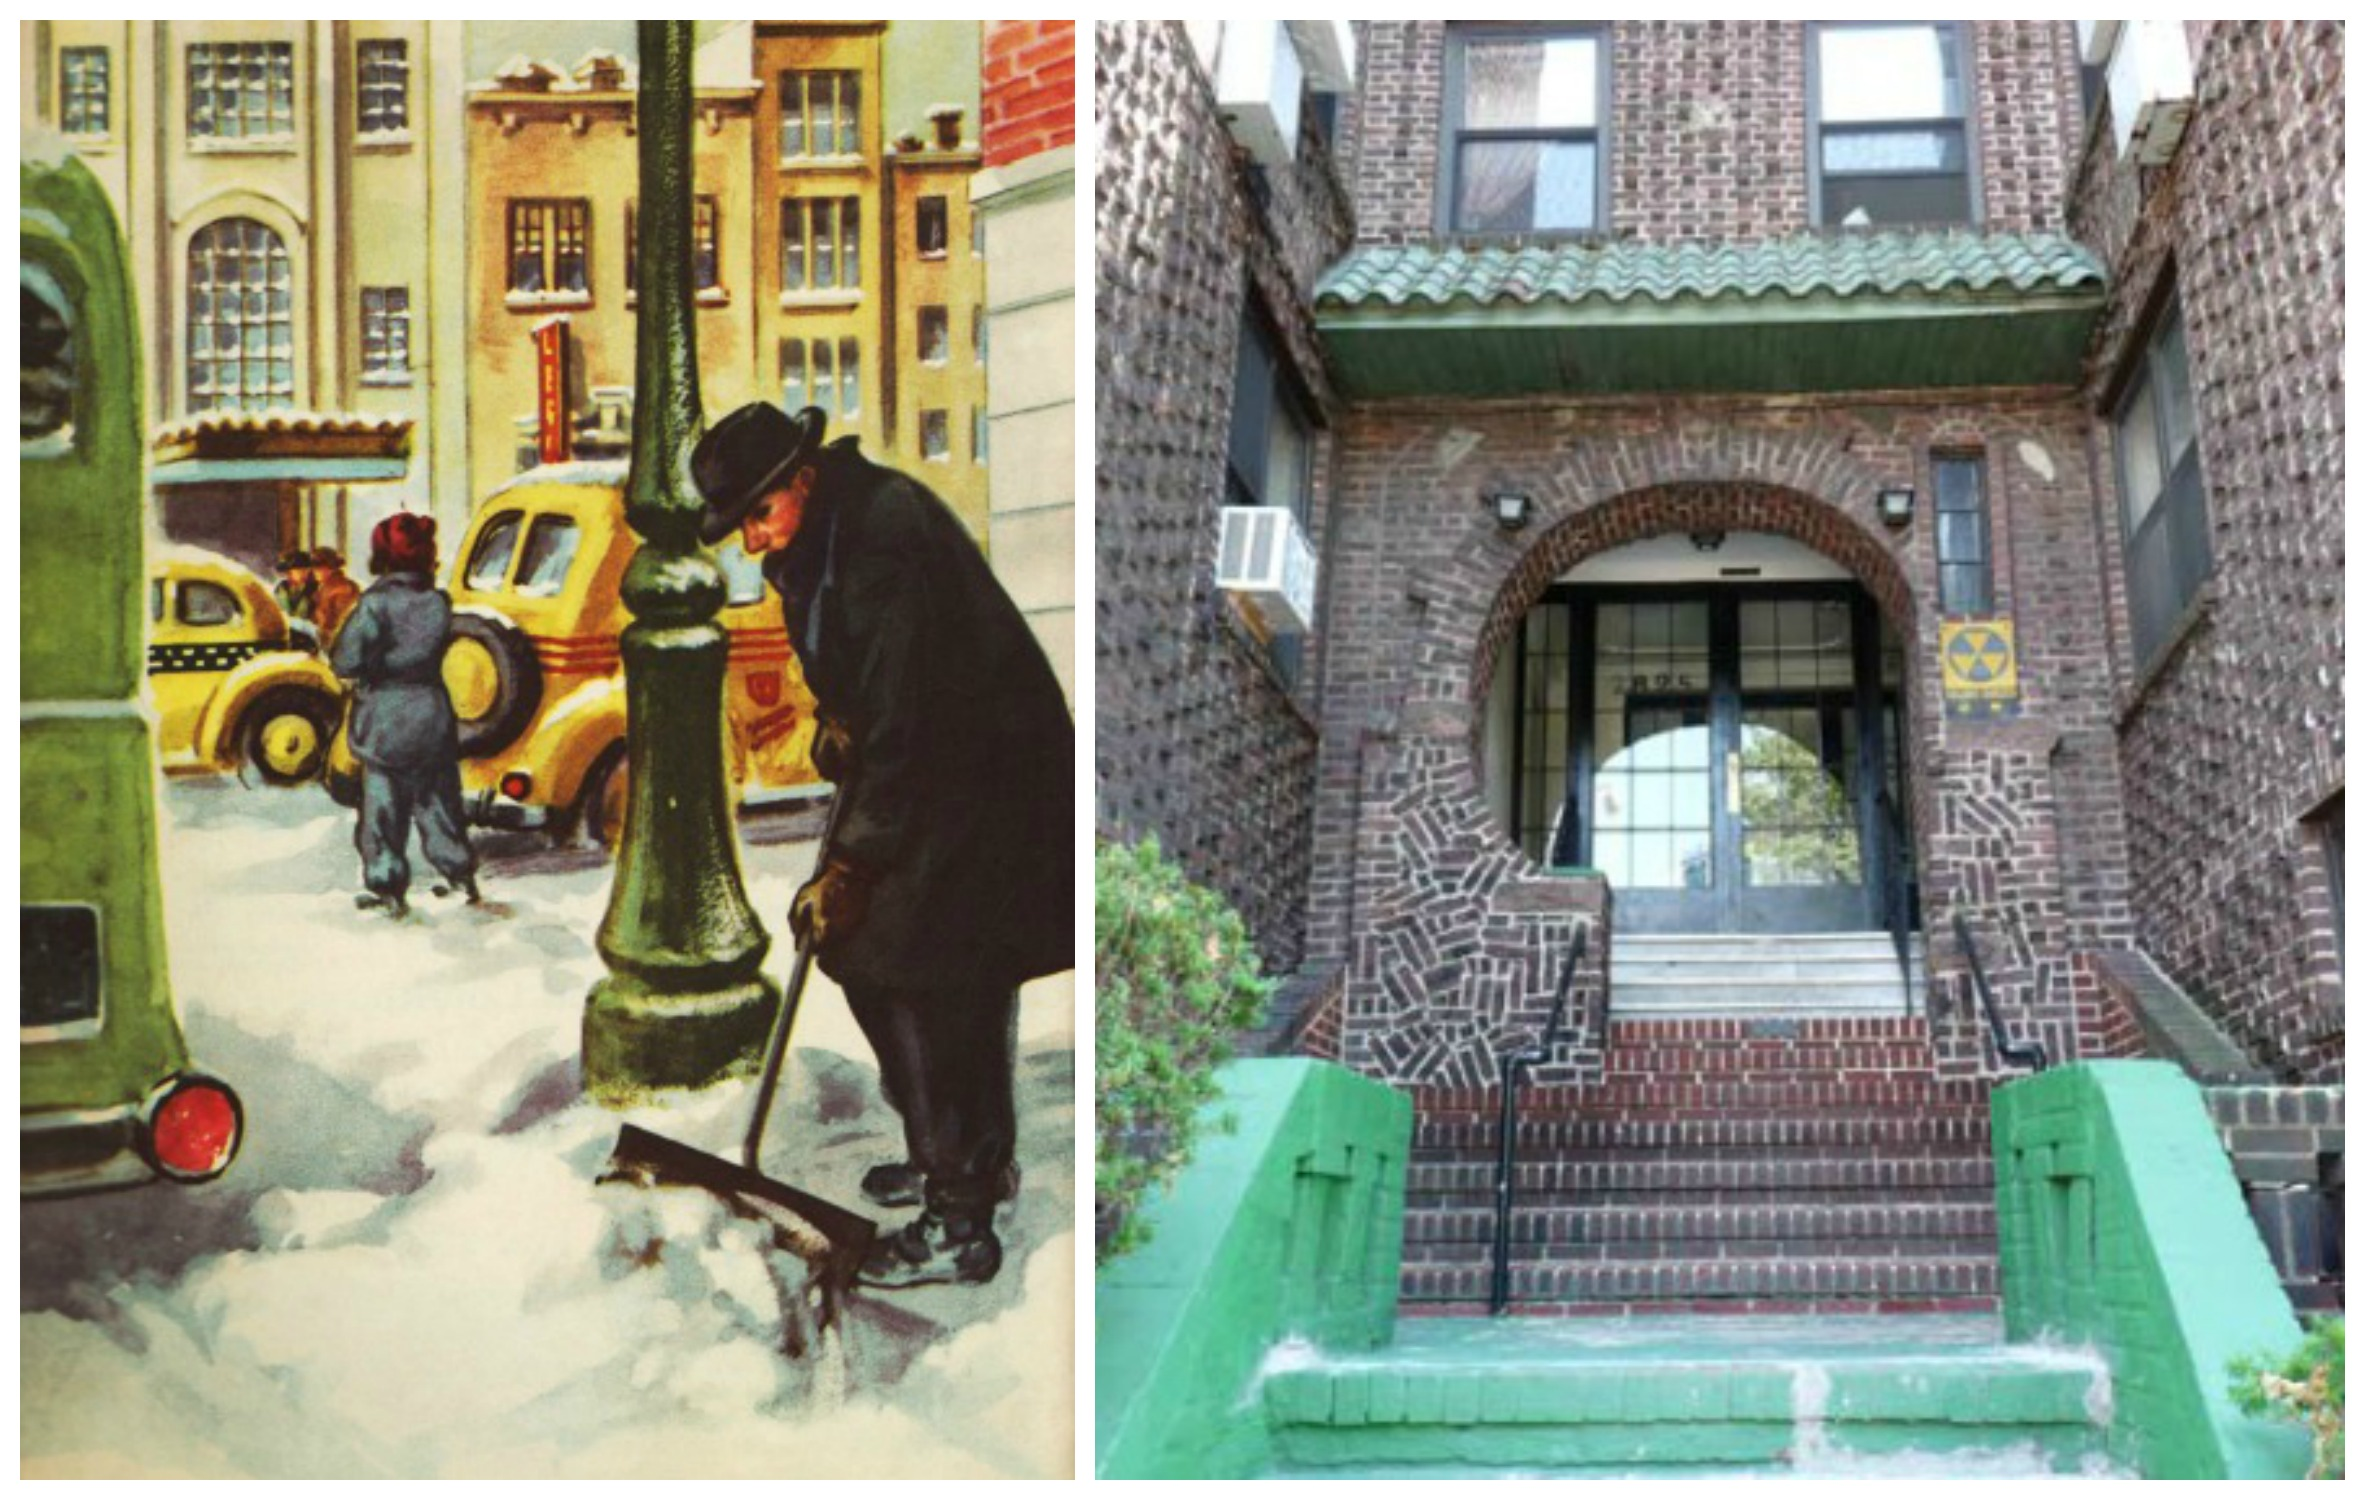 Brick Apartment Building Illustration. Vintage childrens cook illustration man shoveling snow in city streets and apartment  building Queens Revisiting Thanksgiving 1960 Envisioning The American Dream